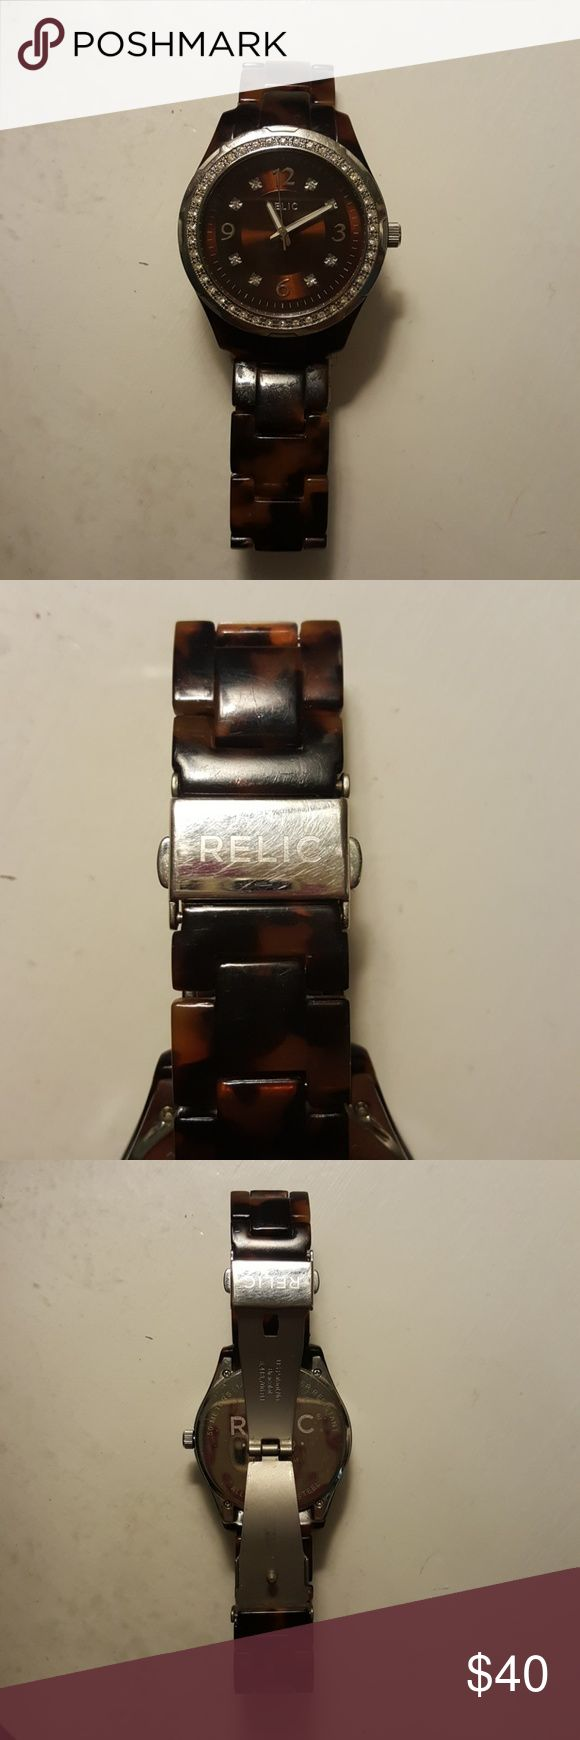 Relic Brown Tortoise Shell Watch Beautiful tortoise shell watch with crystals around the face. Minor scratches from wear, no marks on the face. Needs a new battery. No links have been removed. Relic Accessories Watches